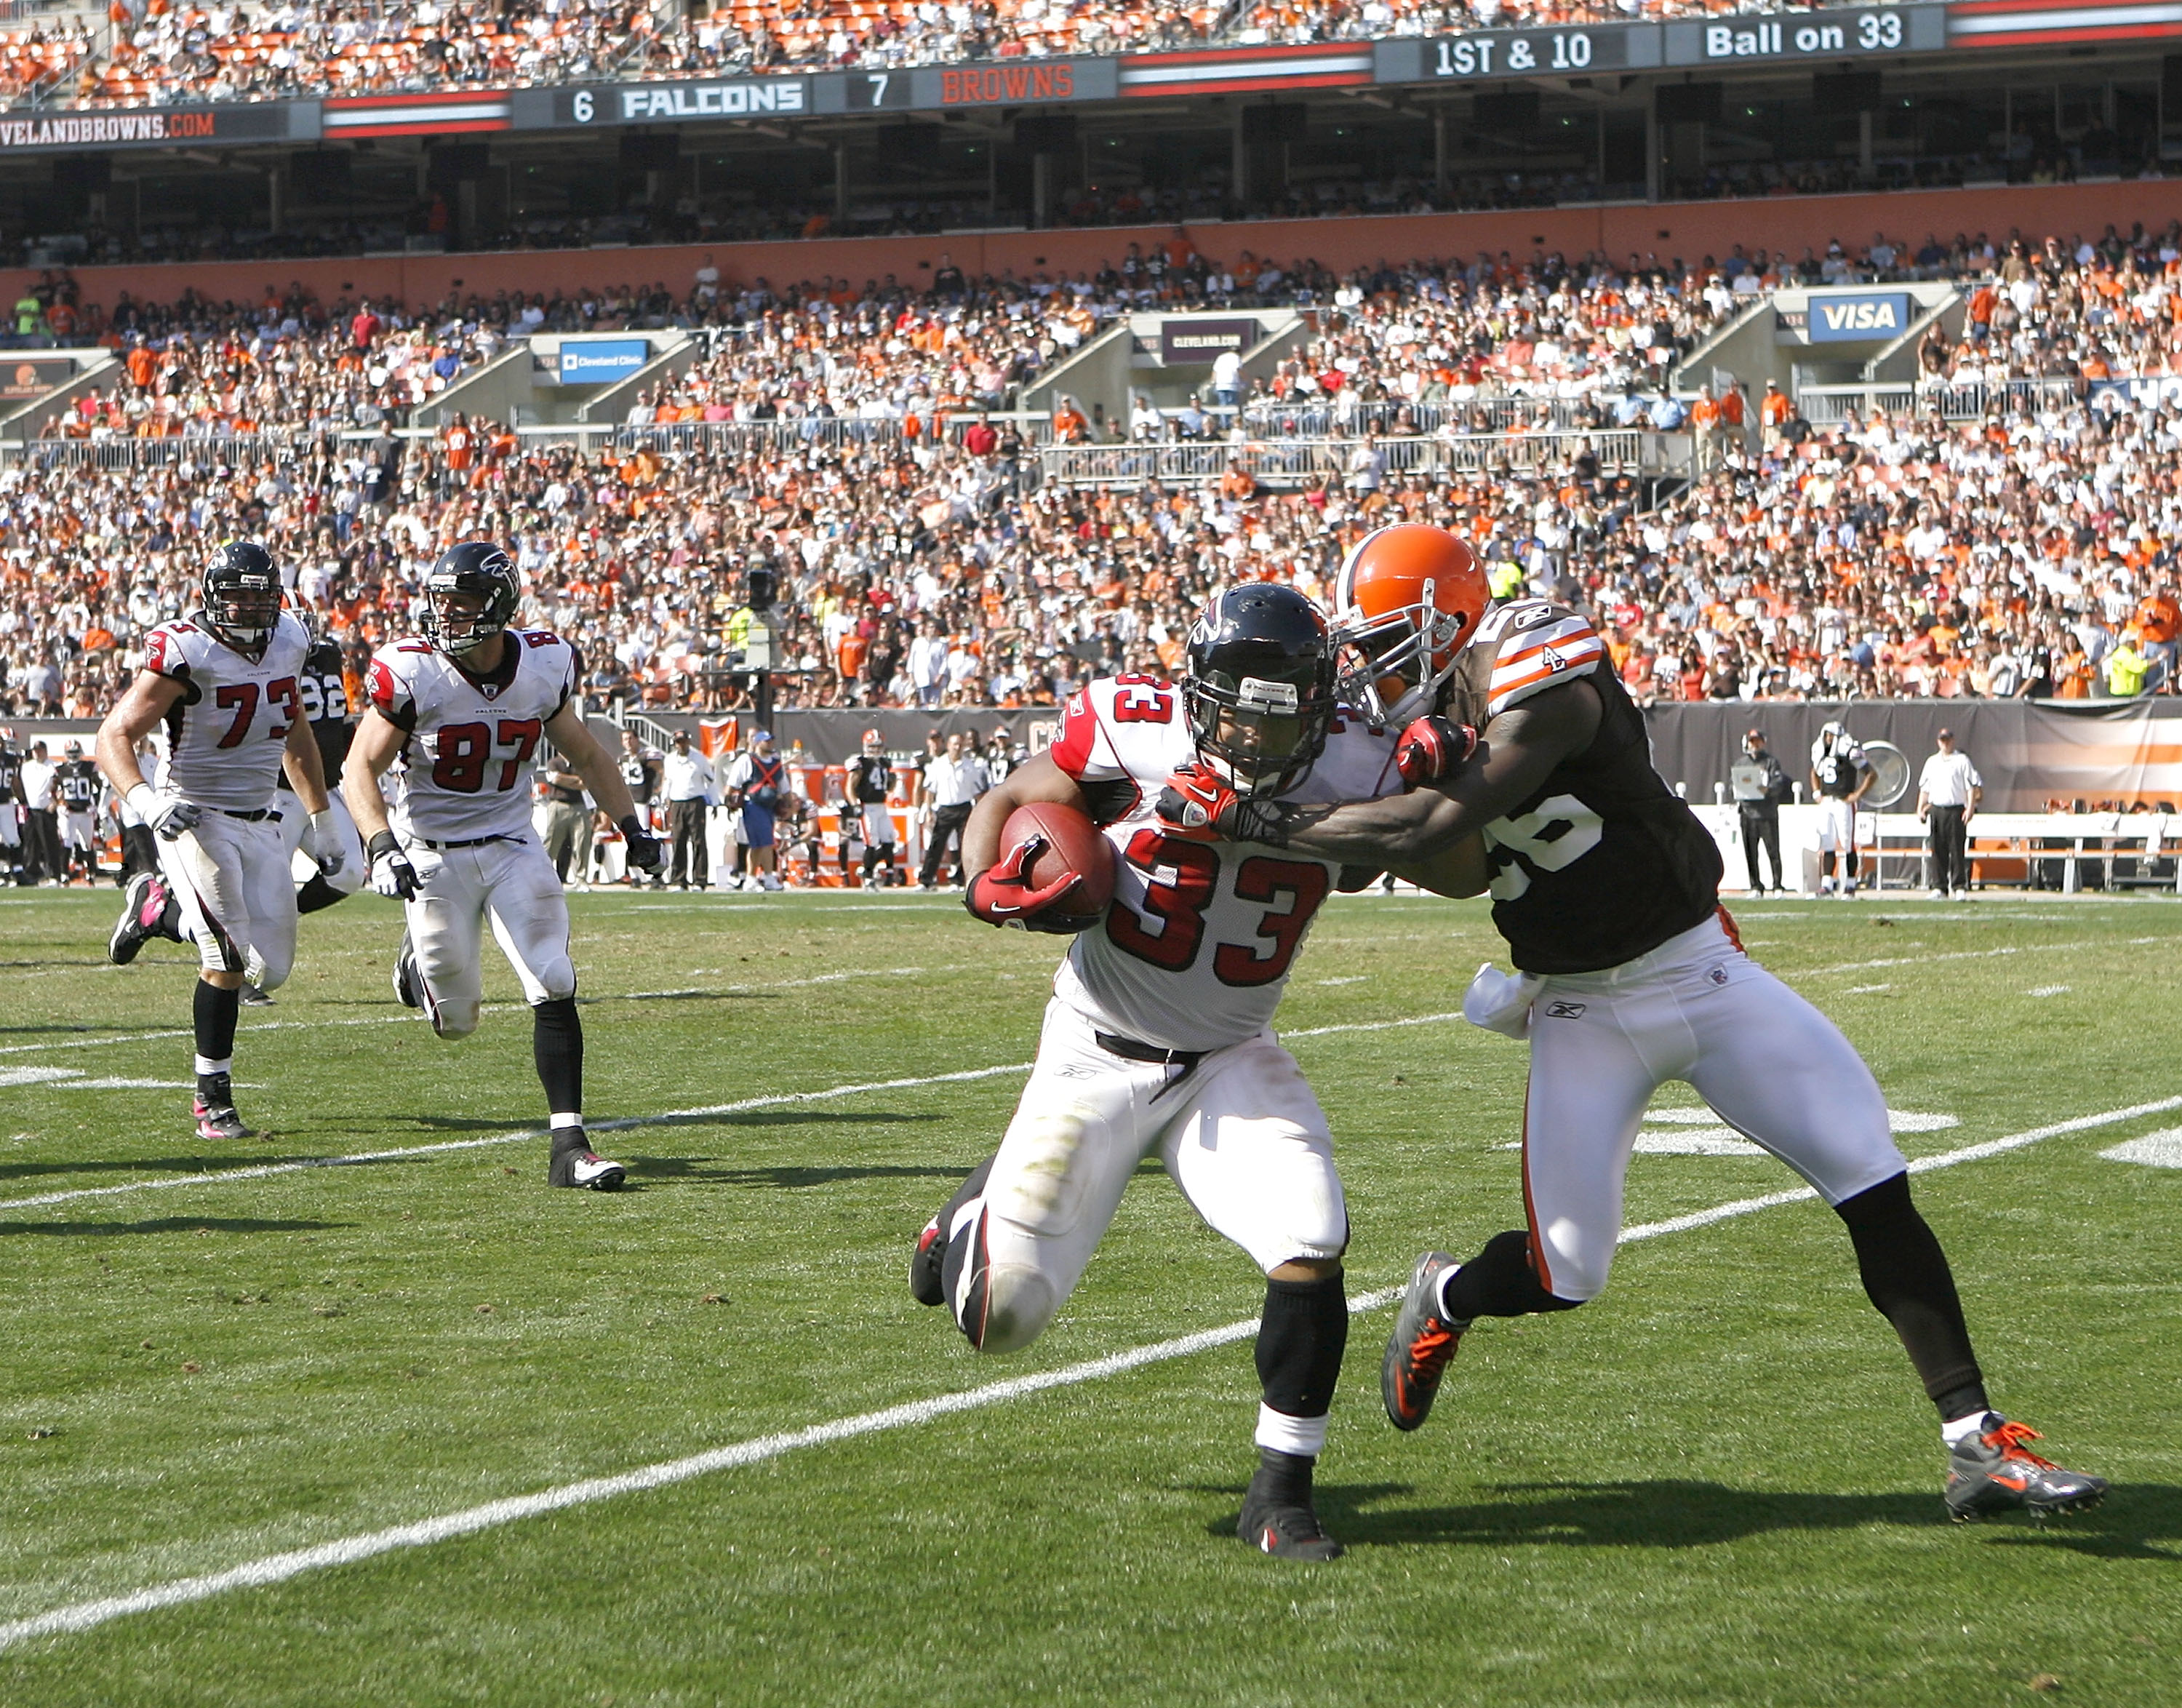 CLEVELAND - OCTOBER 10:  Running back Michael Turner #33 of the Atlanta Falcons runs the ball as he is hit by defensive back Abram Elam #26 of the Cleveland Browns at Cleveland Browns Stadium on October 10, 2010 in Cleveland, Ohio.  (Photo by Matt Sulliva